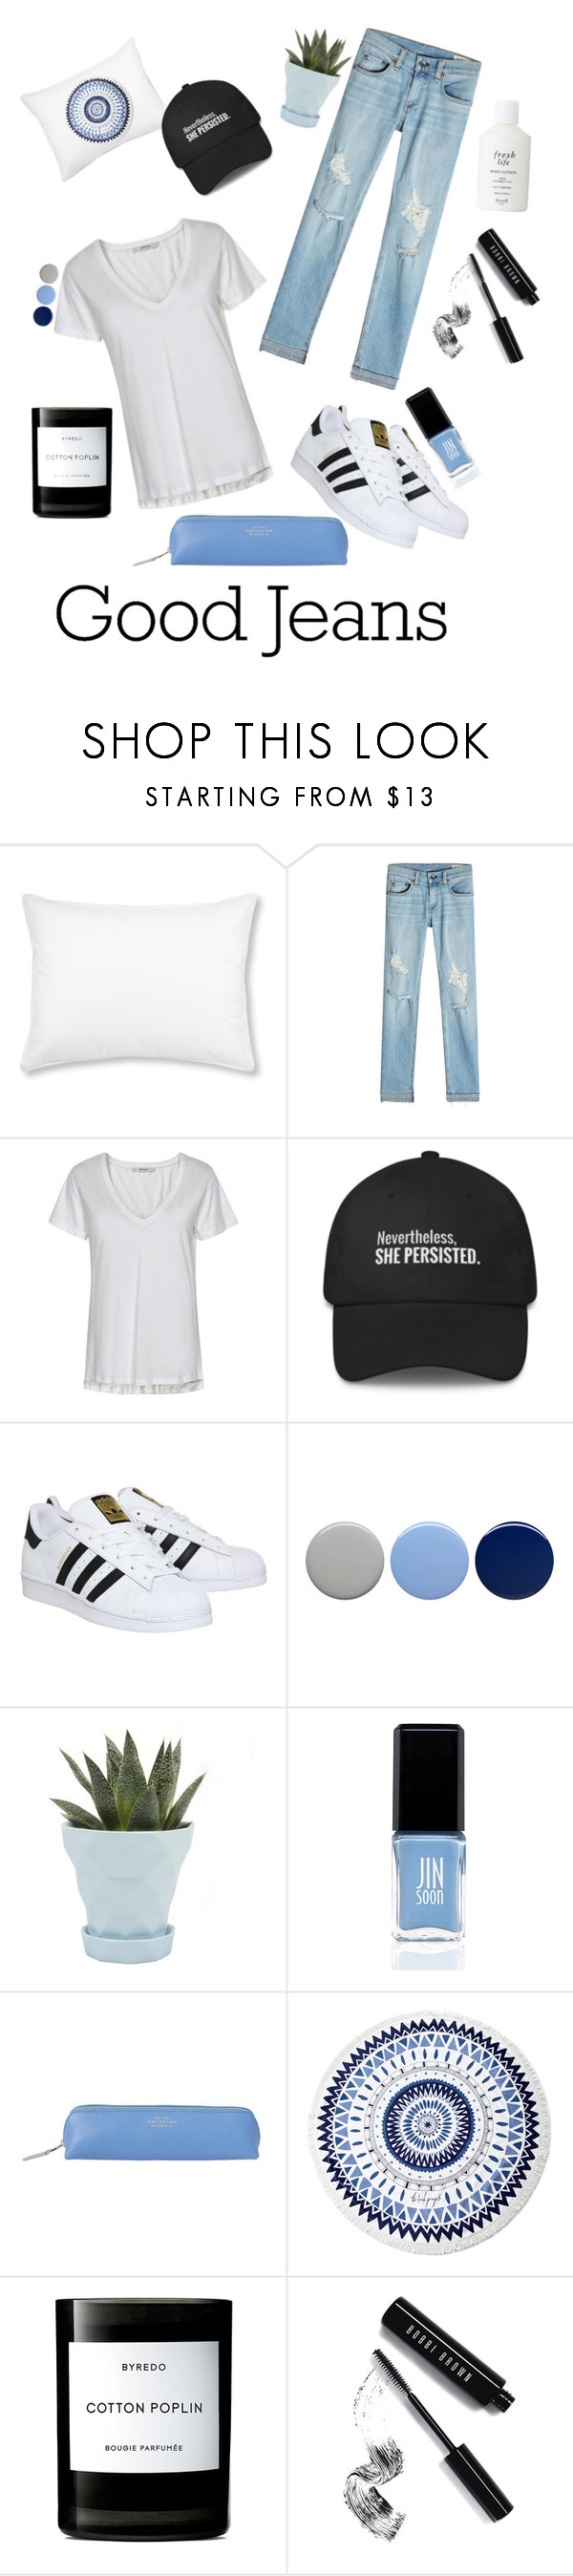 """""""Good Jeans"""" by randomgirl03 ❤ liked on Polyvore featuring L.L.Bean, rag & bone, Gestuz, adidas, Burberry, Chive, JINsoon, Smythson, The Beach People and Byredo"""